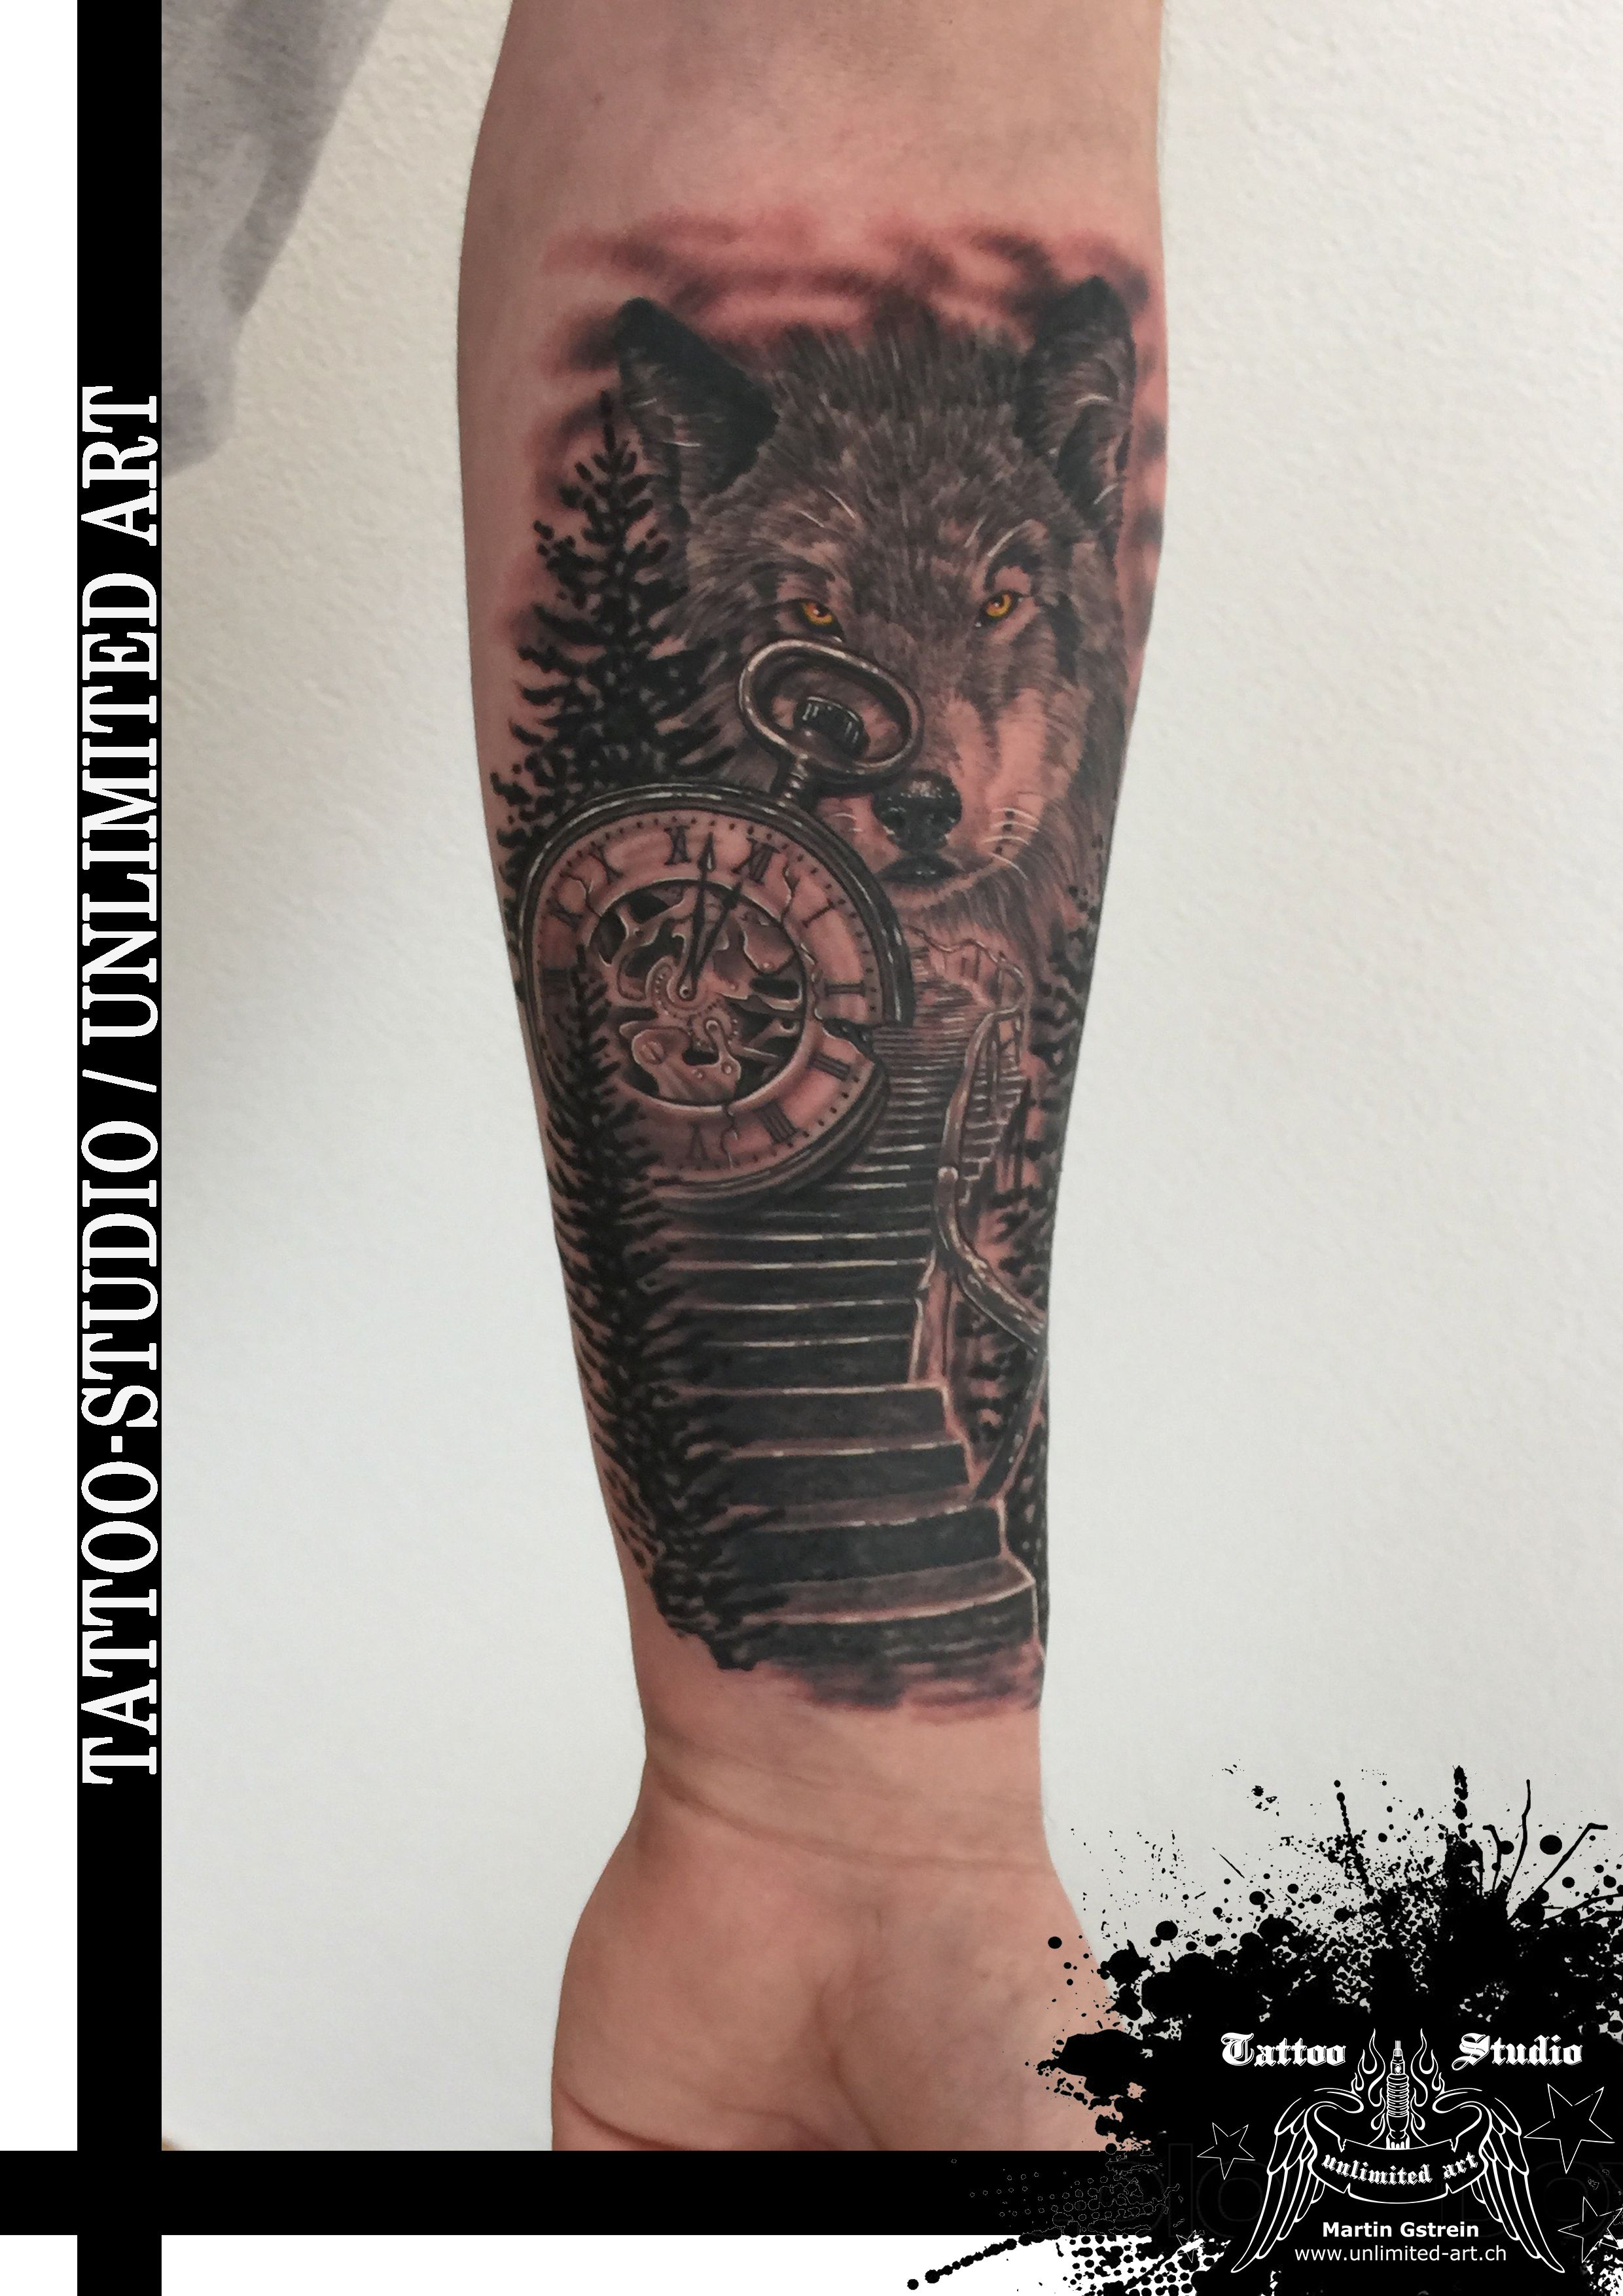 Treppe Tattoo Black Grey Tattoo Treppe Mit Taschenuhr Wolf Tattoo